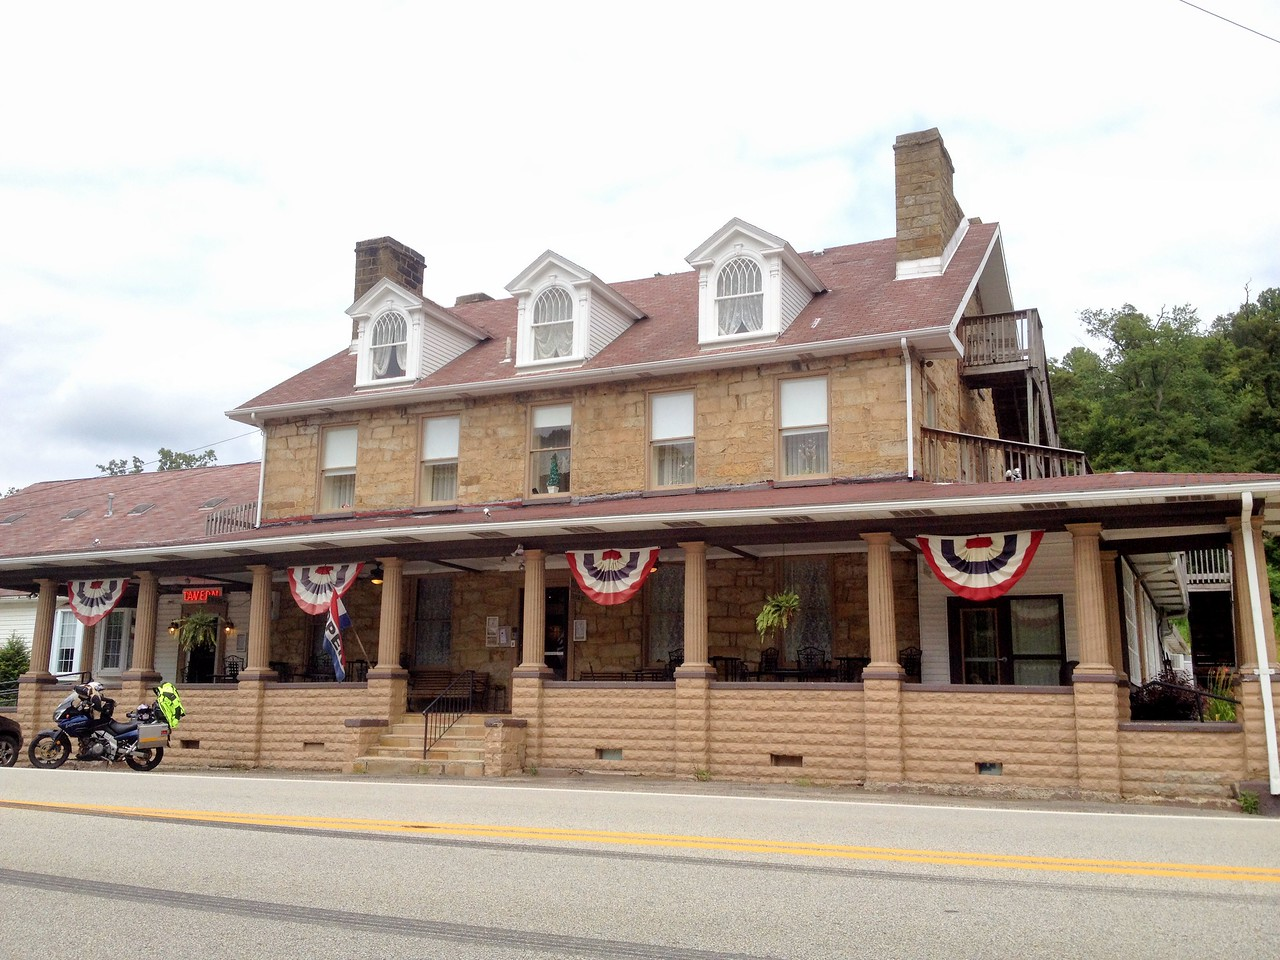 The Stone House Inn & Tavern. Farmington, PA right along US40. <br /> Originally opened in 1822!<br /> Stopped here on the way home to warm up and get coffee.